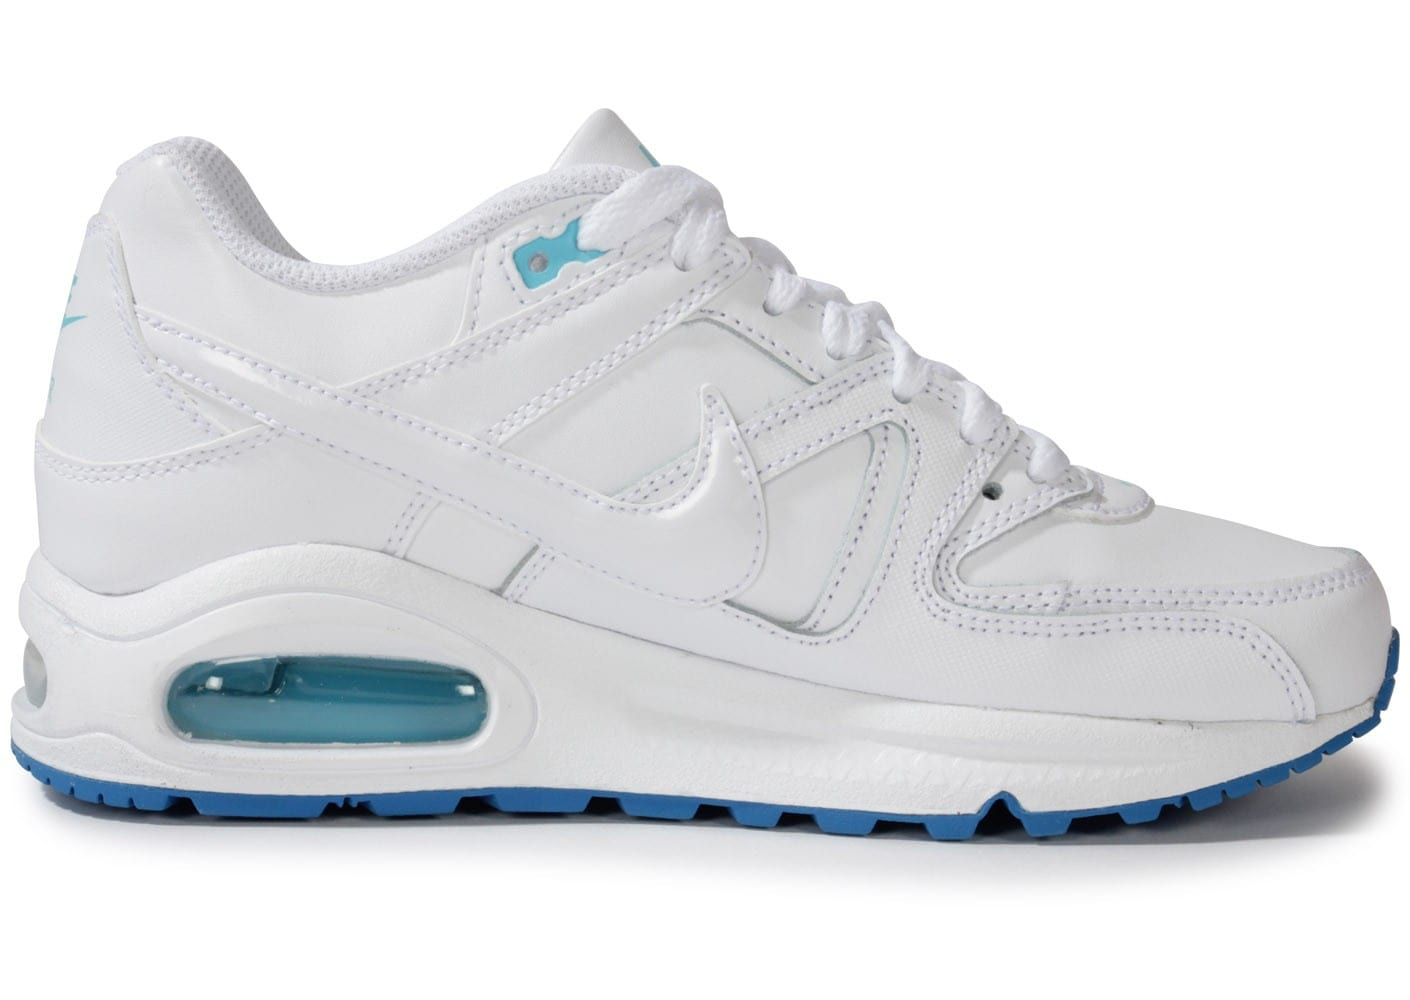 Chaussures Nike AIR MAX COMMAND JUNIOR BLANCHE TURQUOISE vue dessous